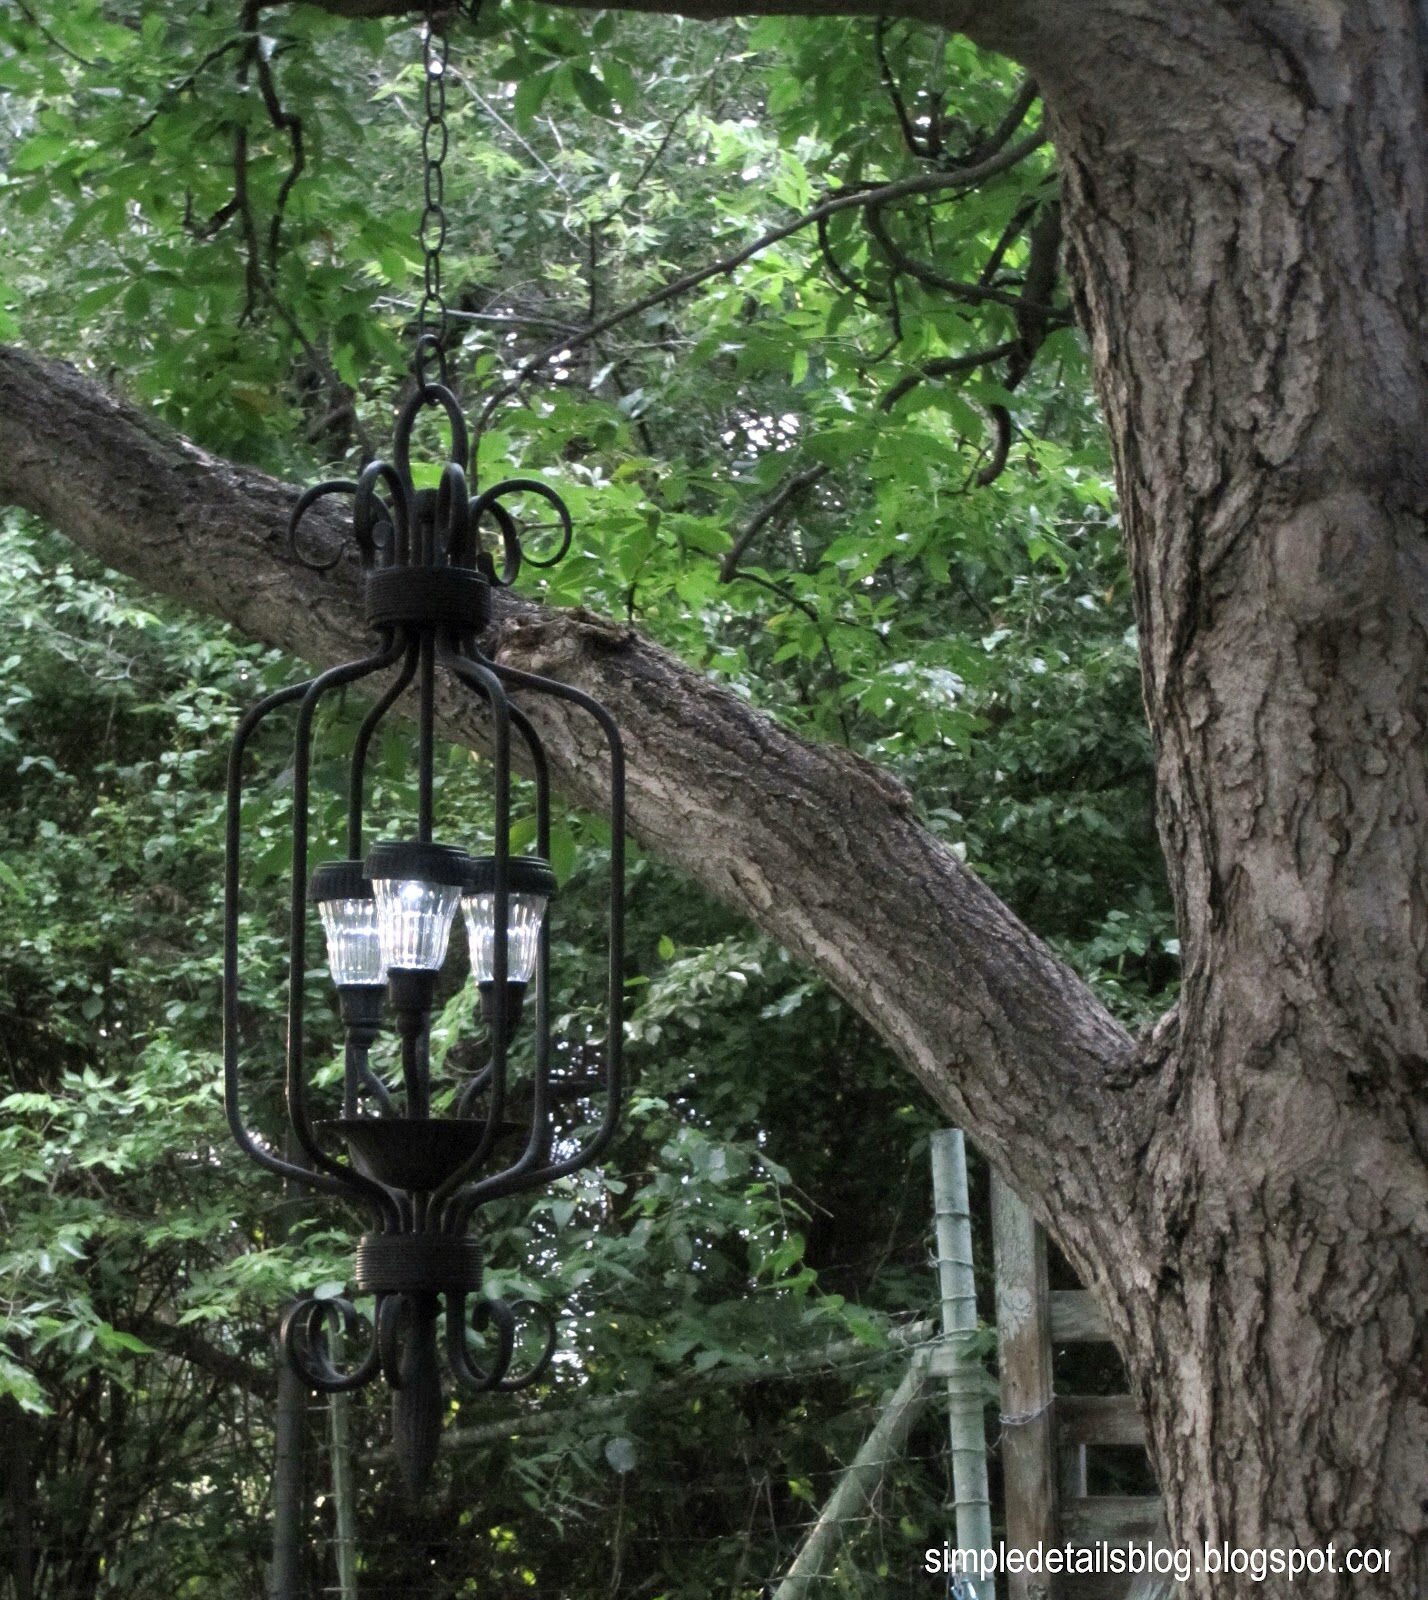 Pin by jayleah collins on do more decor pinterest chandeliers diy outdoor solar chandelier from a thrift store chandelier and solar lights arubaitofo Choice Image